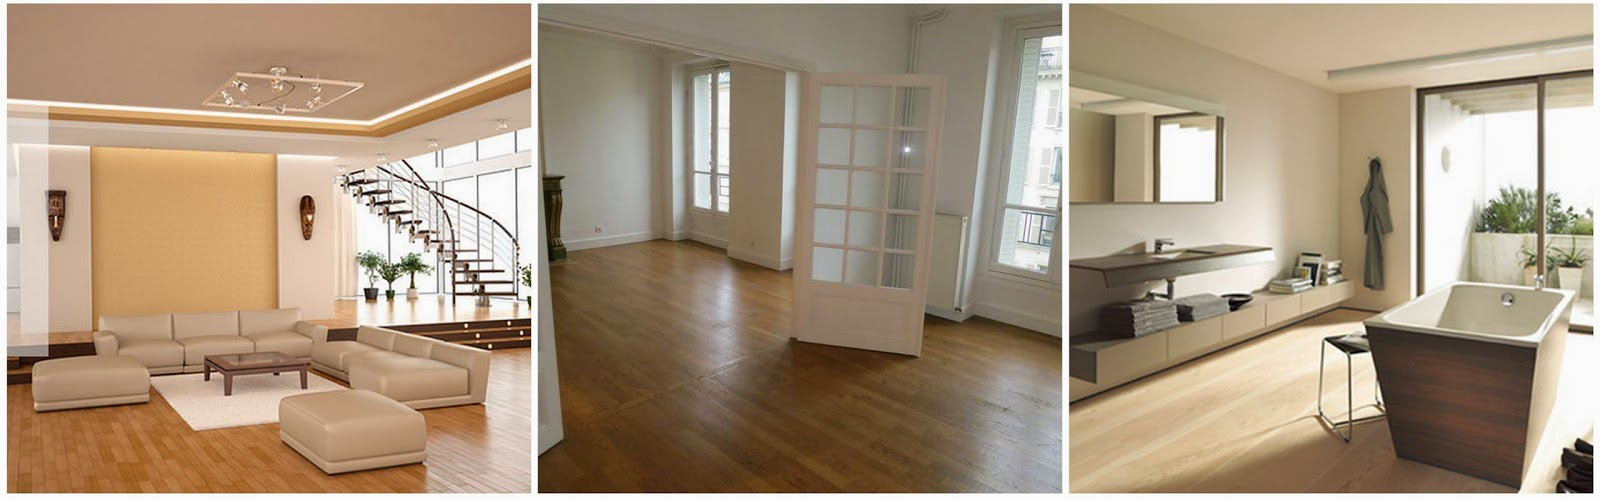 Travaux appartement 92110 clichy